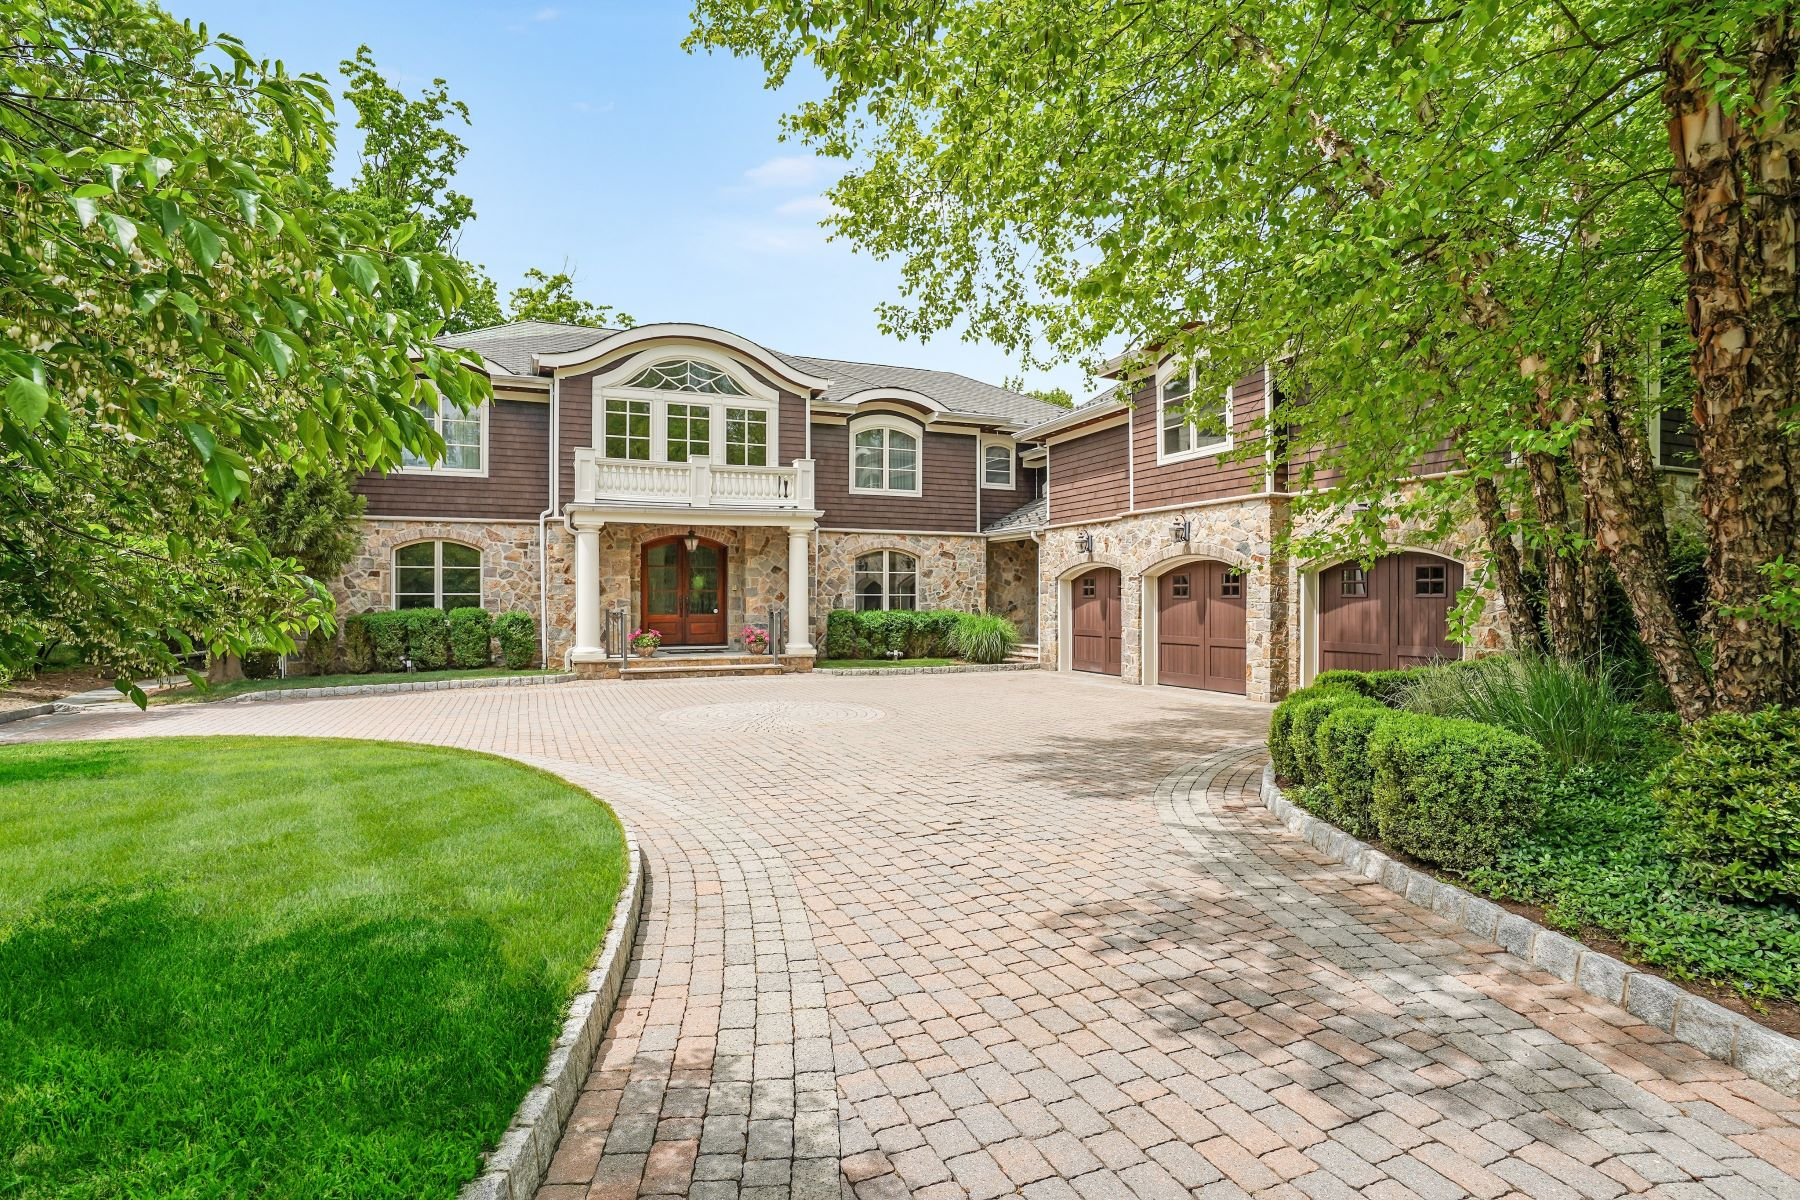 Single Family Homes for Sale at Architectural & Scenic Grandeur 296 Hartshorn Drive, Short Hills, New Jersey 07078 United States